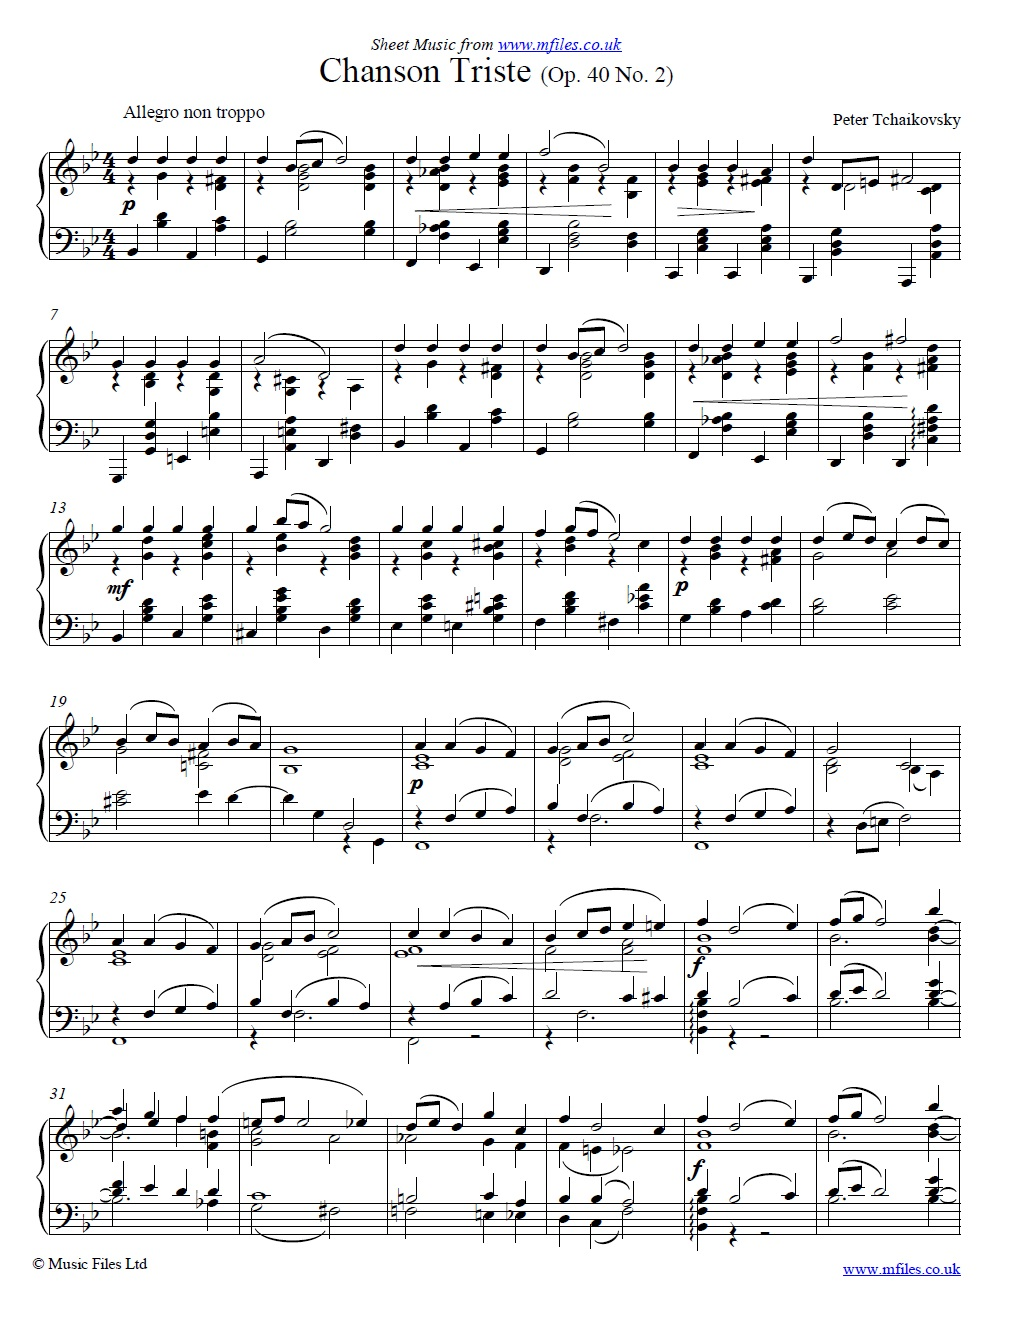 Tchaikovsky's Chanson Triste Op.40 No.2 for piano - sheet music 1st page